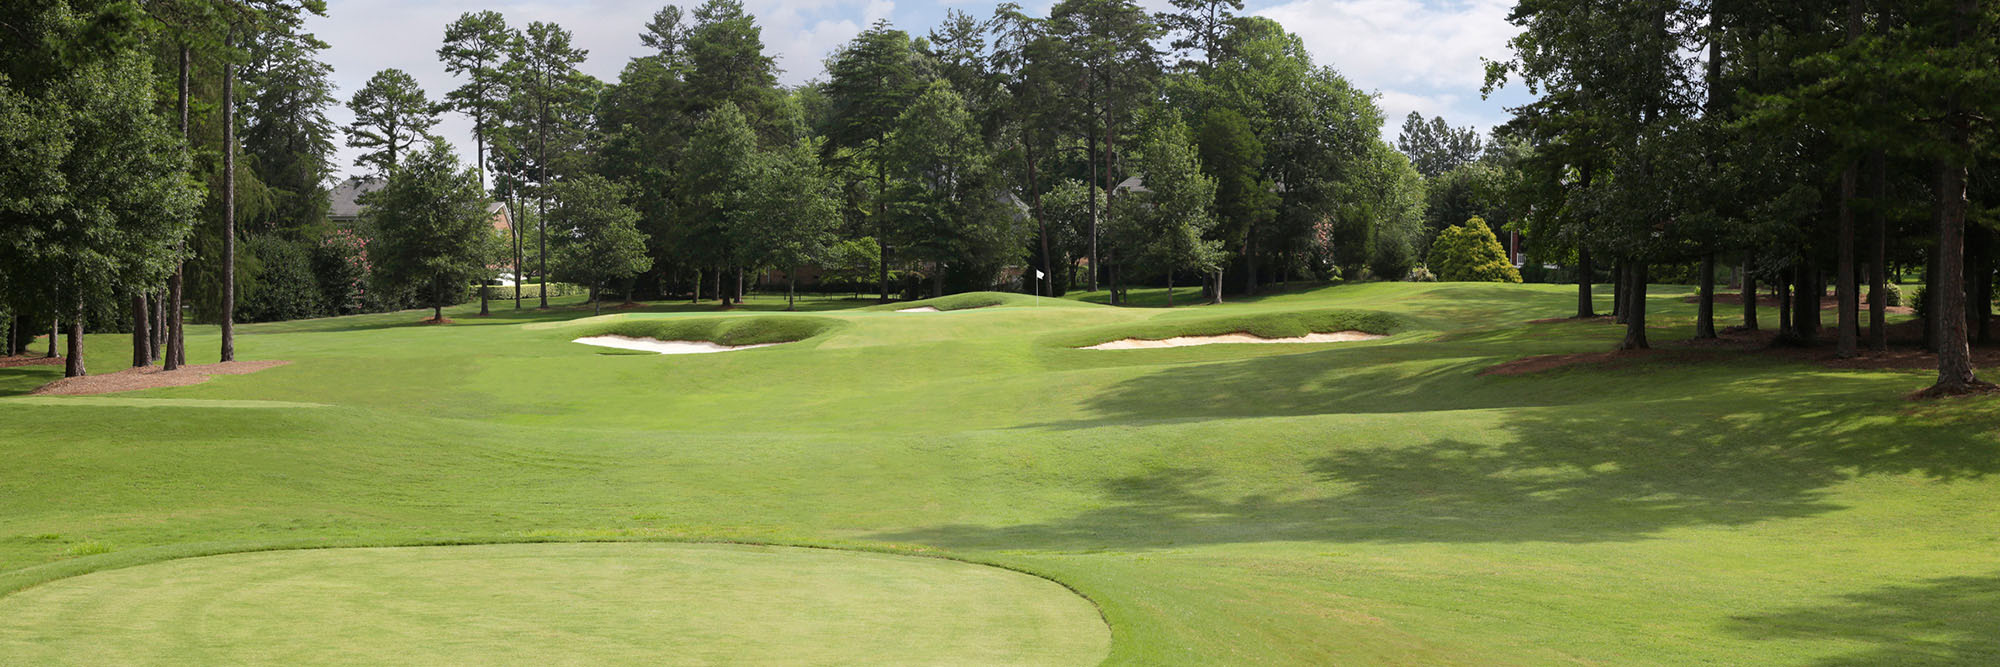 Golf Course Image - River Run Country Club No. 14